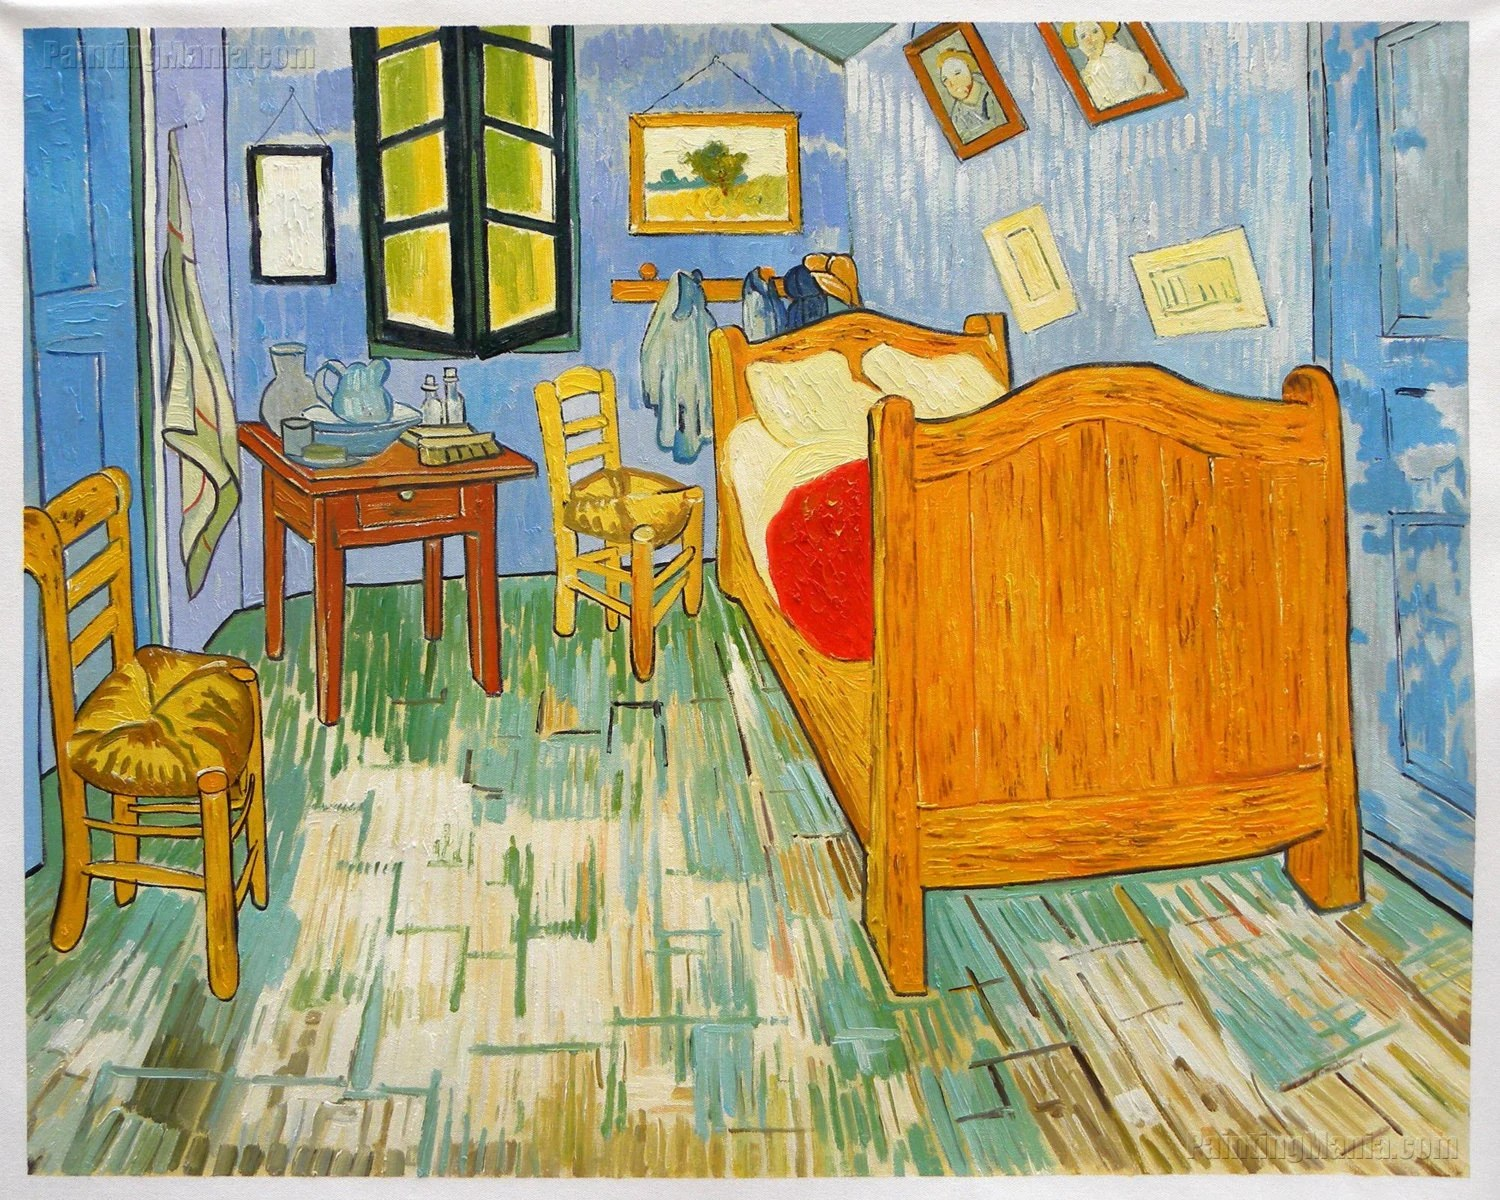 La Camera Da Letto Vincent Van Gogh Vincent S Bedroom In Arles 1889 Vincent Van Gogh Hand Painted Oil Painting Reproduction Bedroom Wall Art Interior Decor Studio Wall Decor